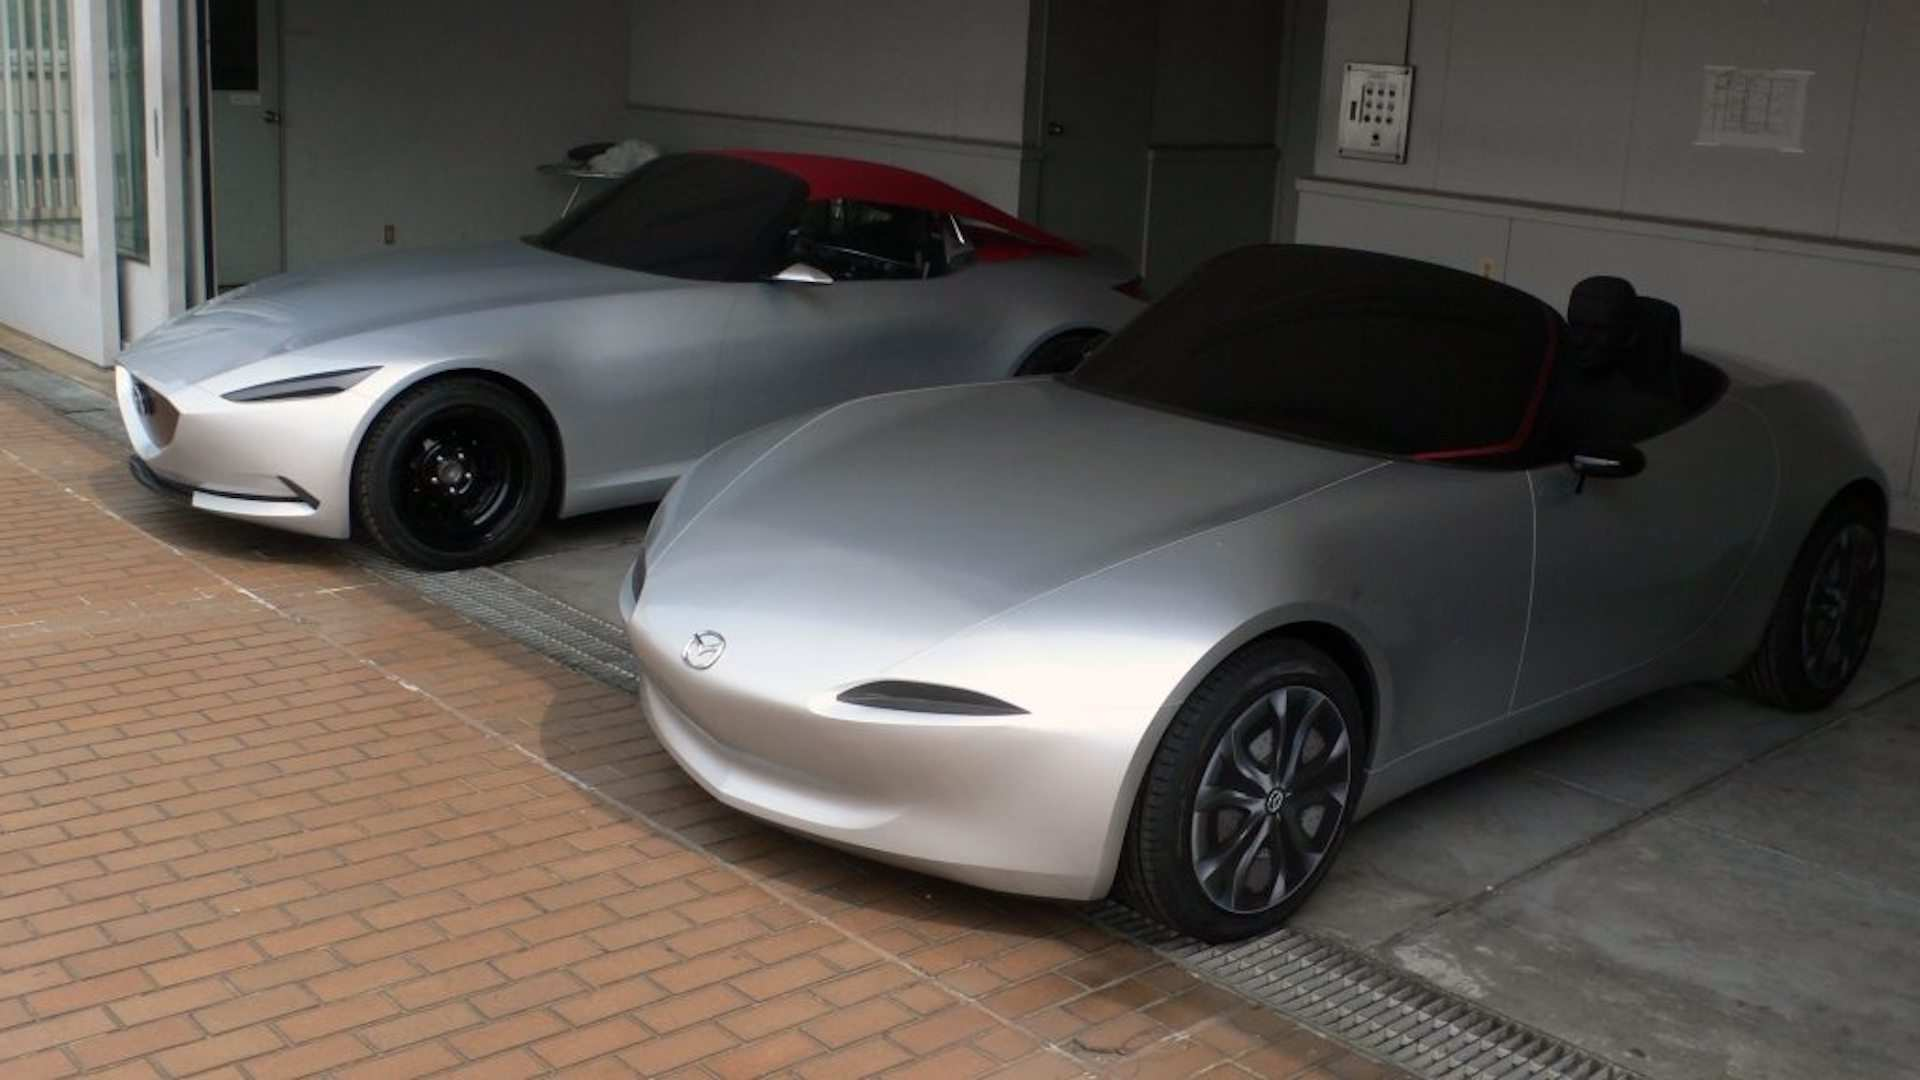 57 All New 2020 Mazda Mx 5 Miata Exterior And Interior